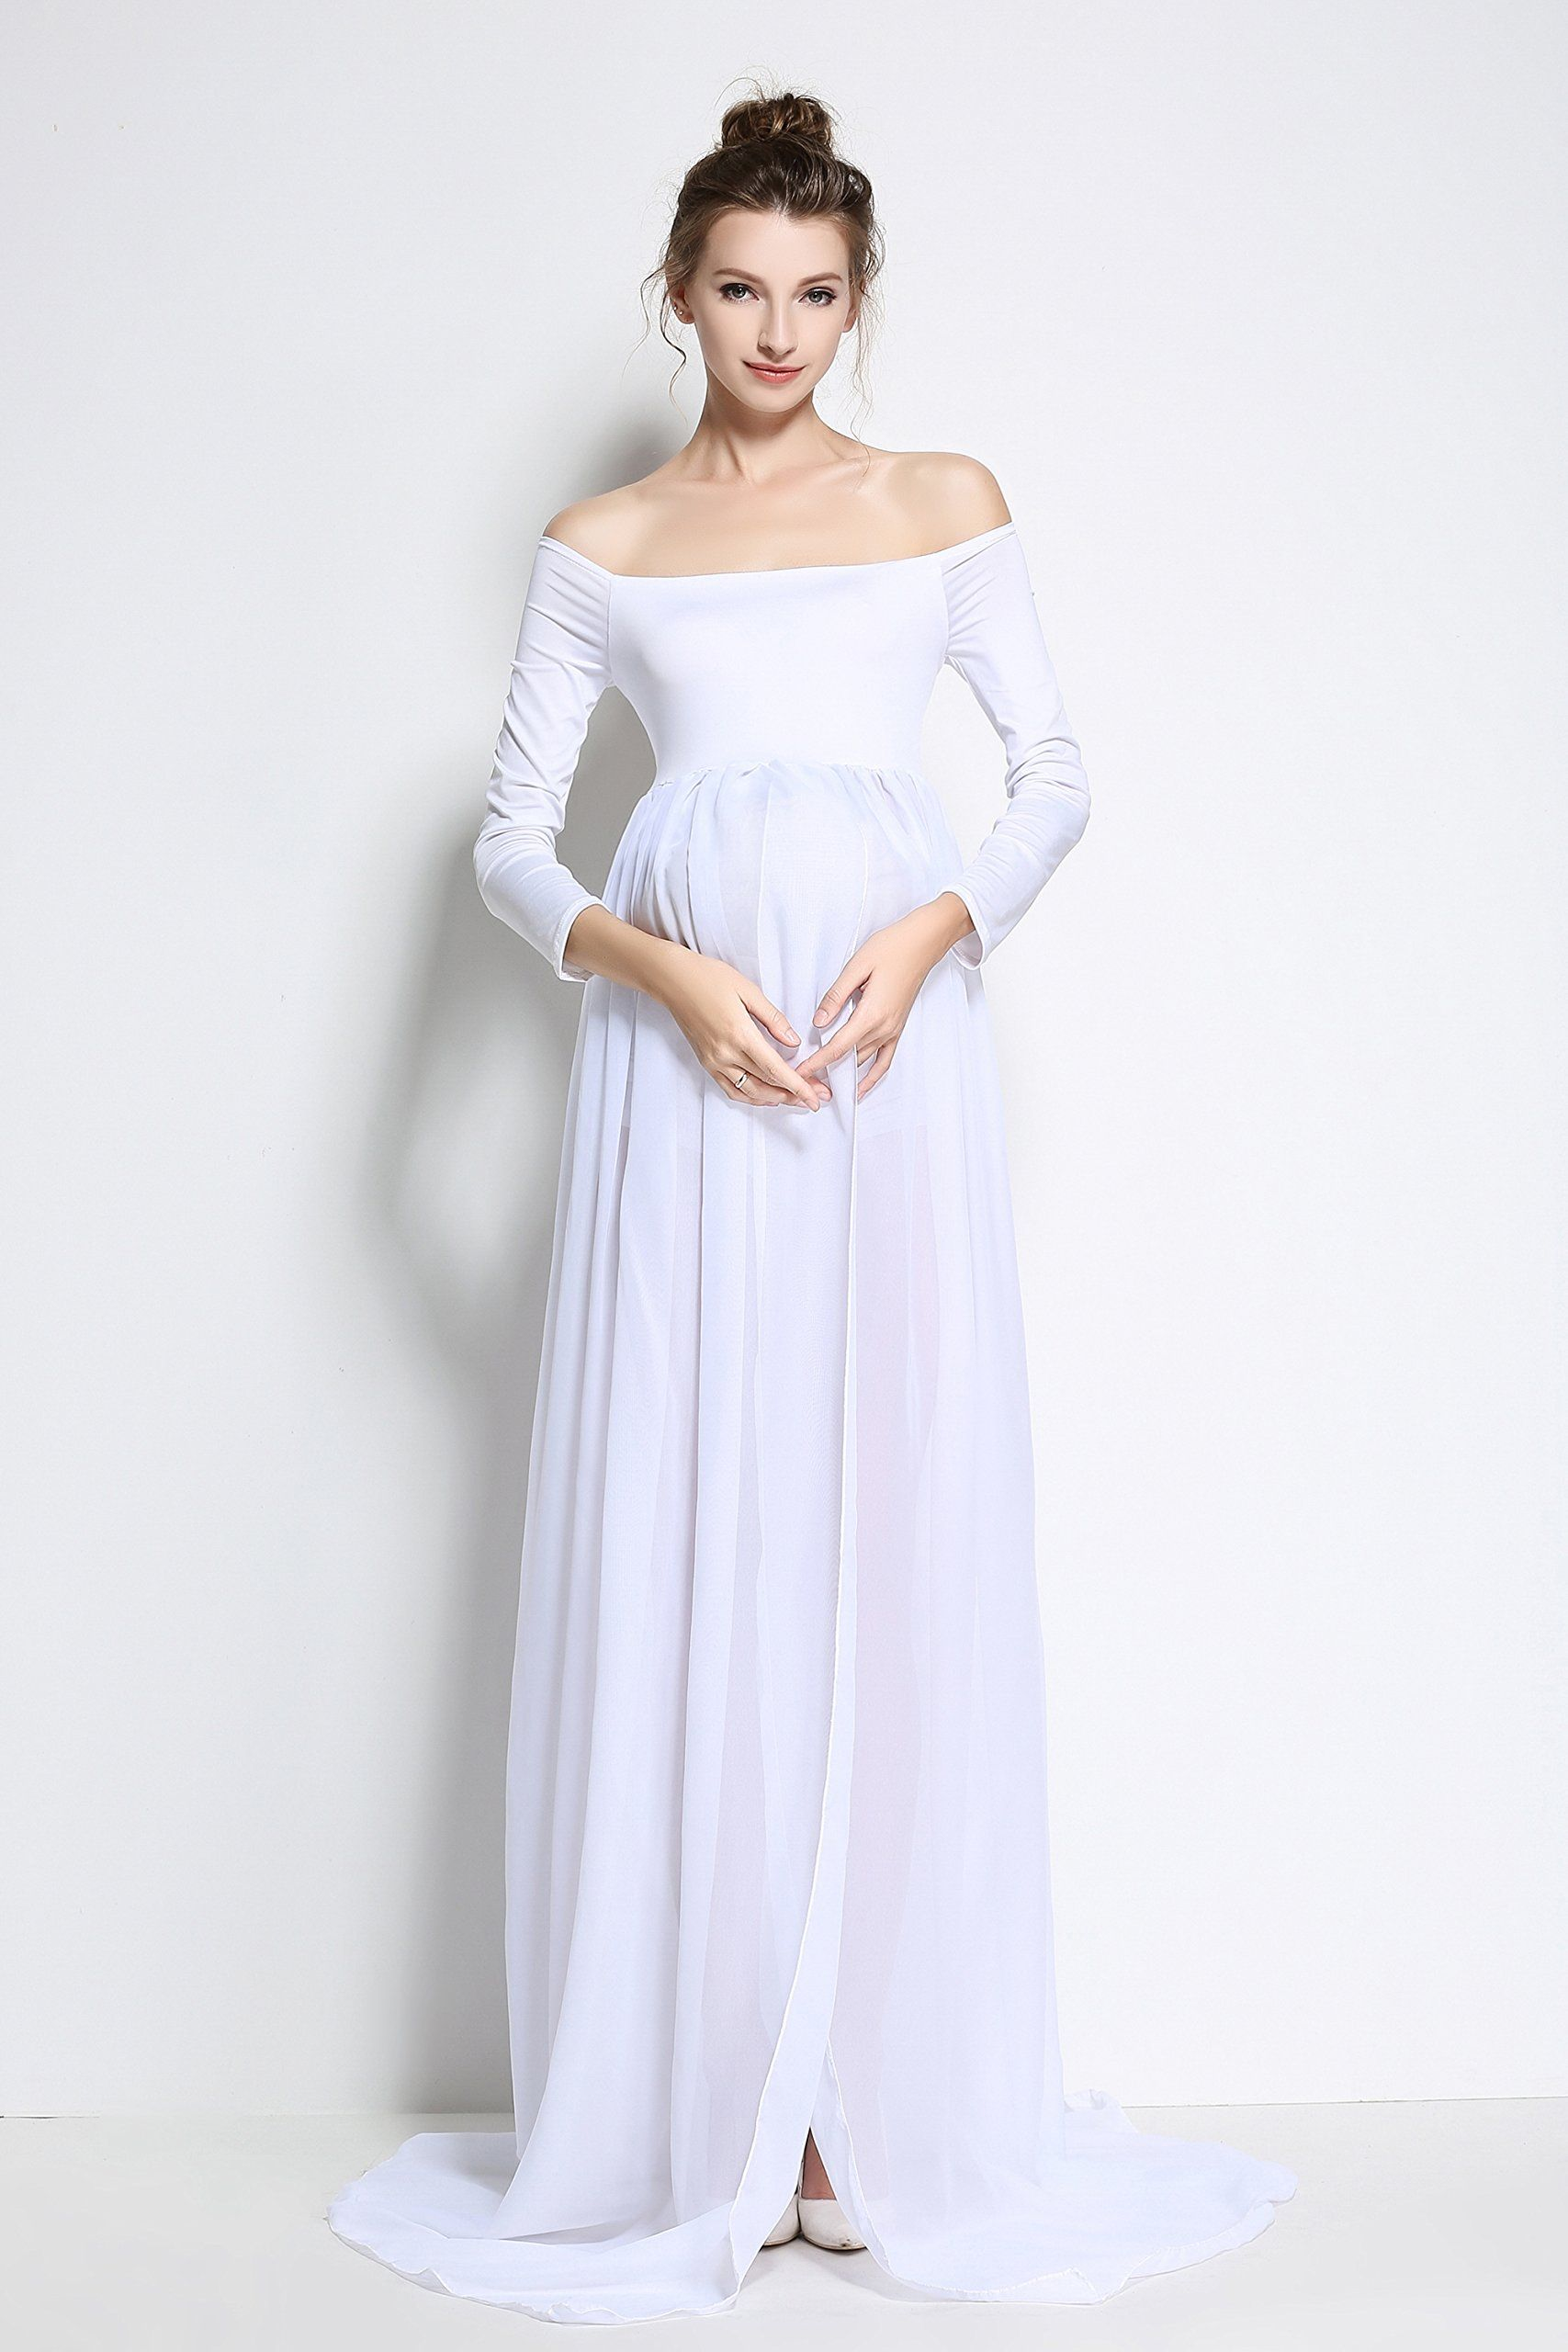 bdace079d3 Maternity Styles - modest maternity maxi dress   Vincendarr Womens Lace  Long Maternity Dress for Photography Beach Maxi Dresses XL White --  Discover more ...